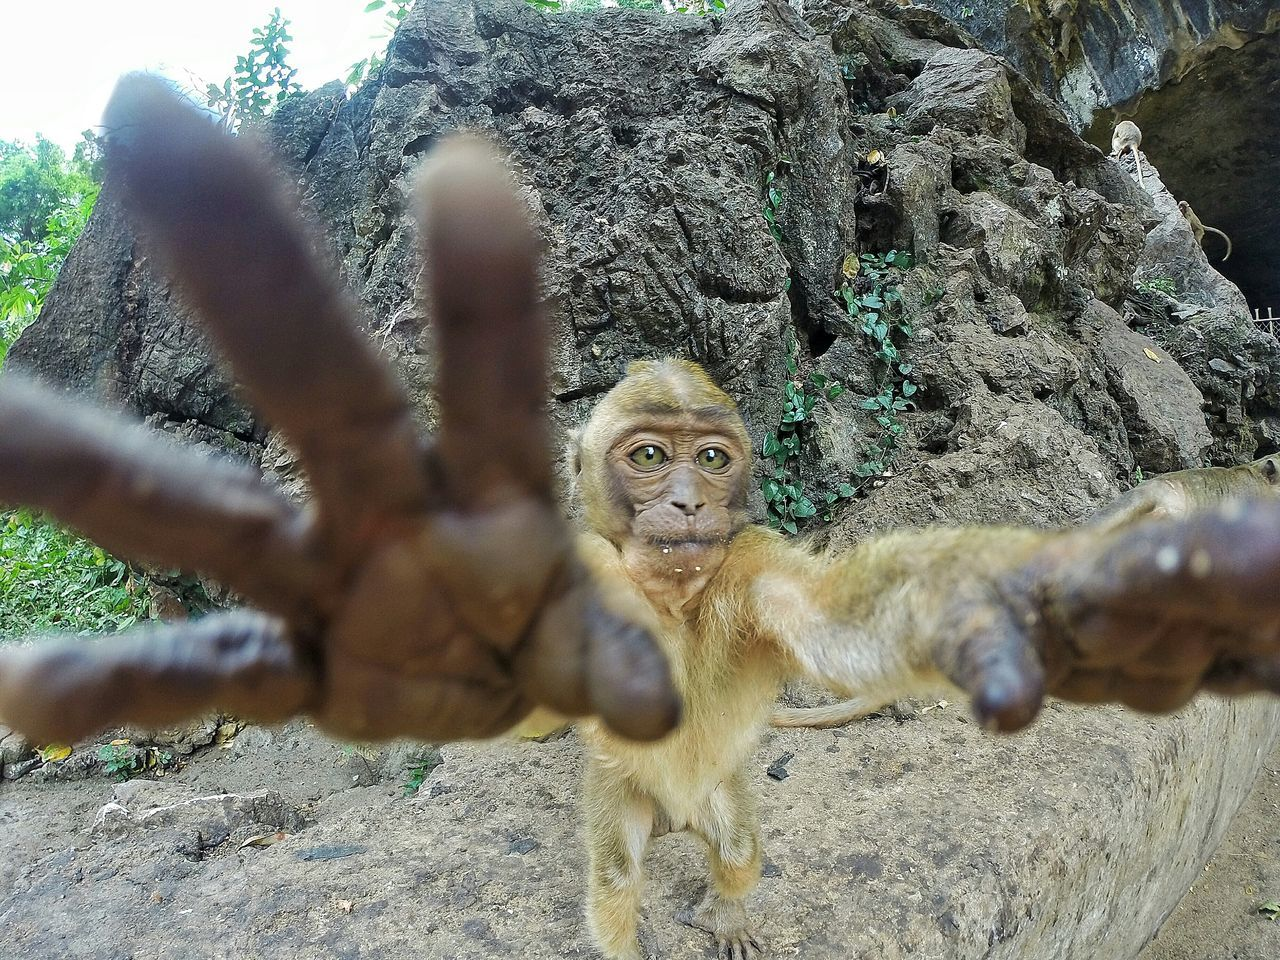 Close-up portrait of monkey with arms raised